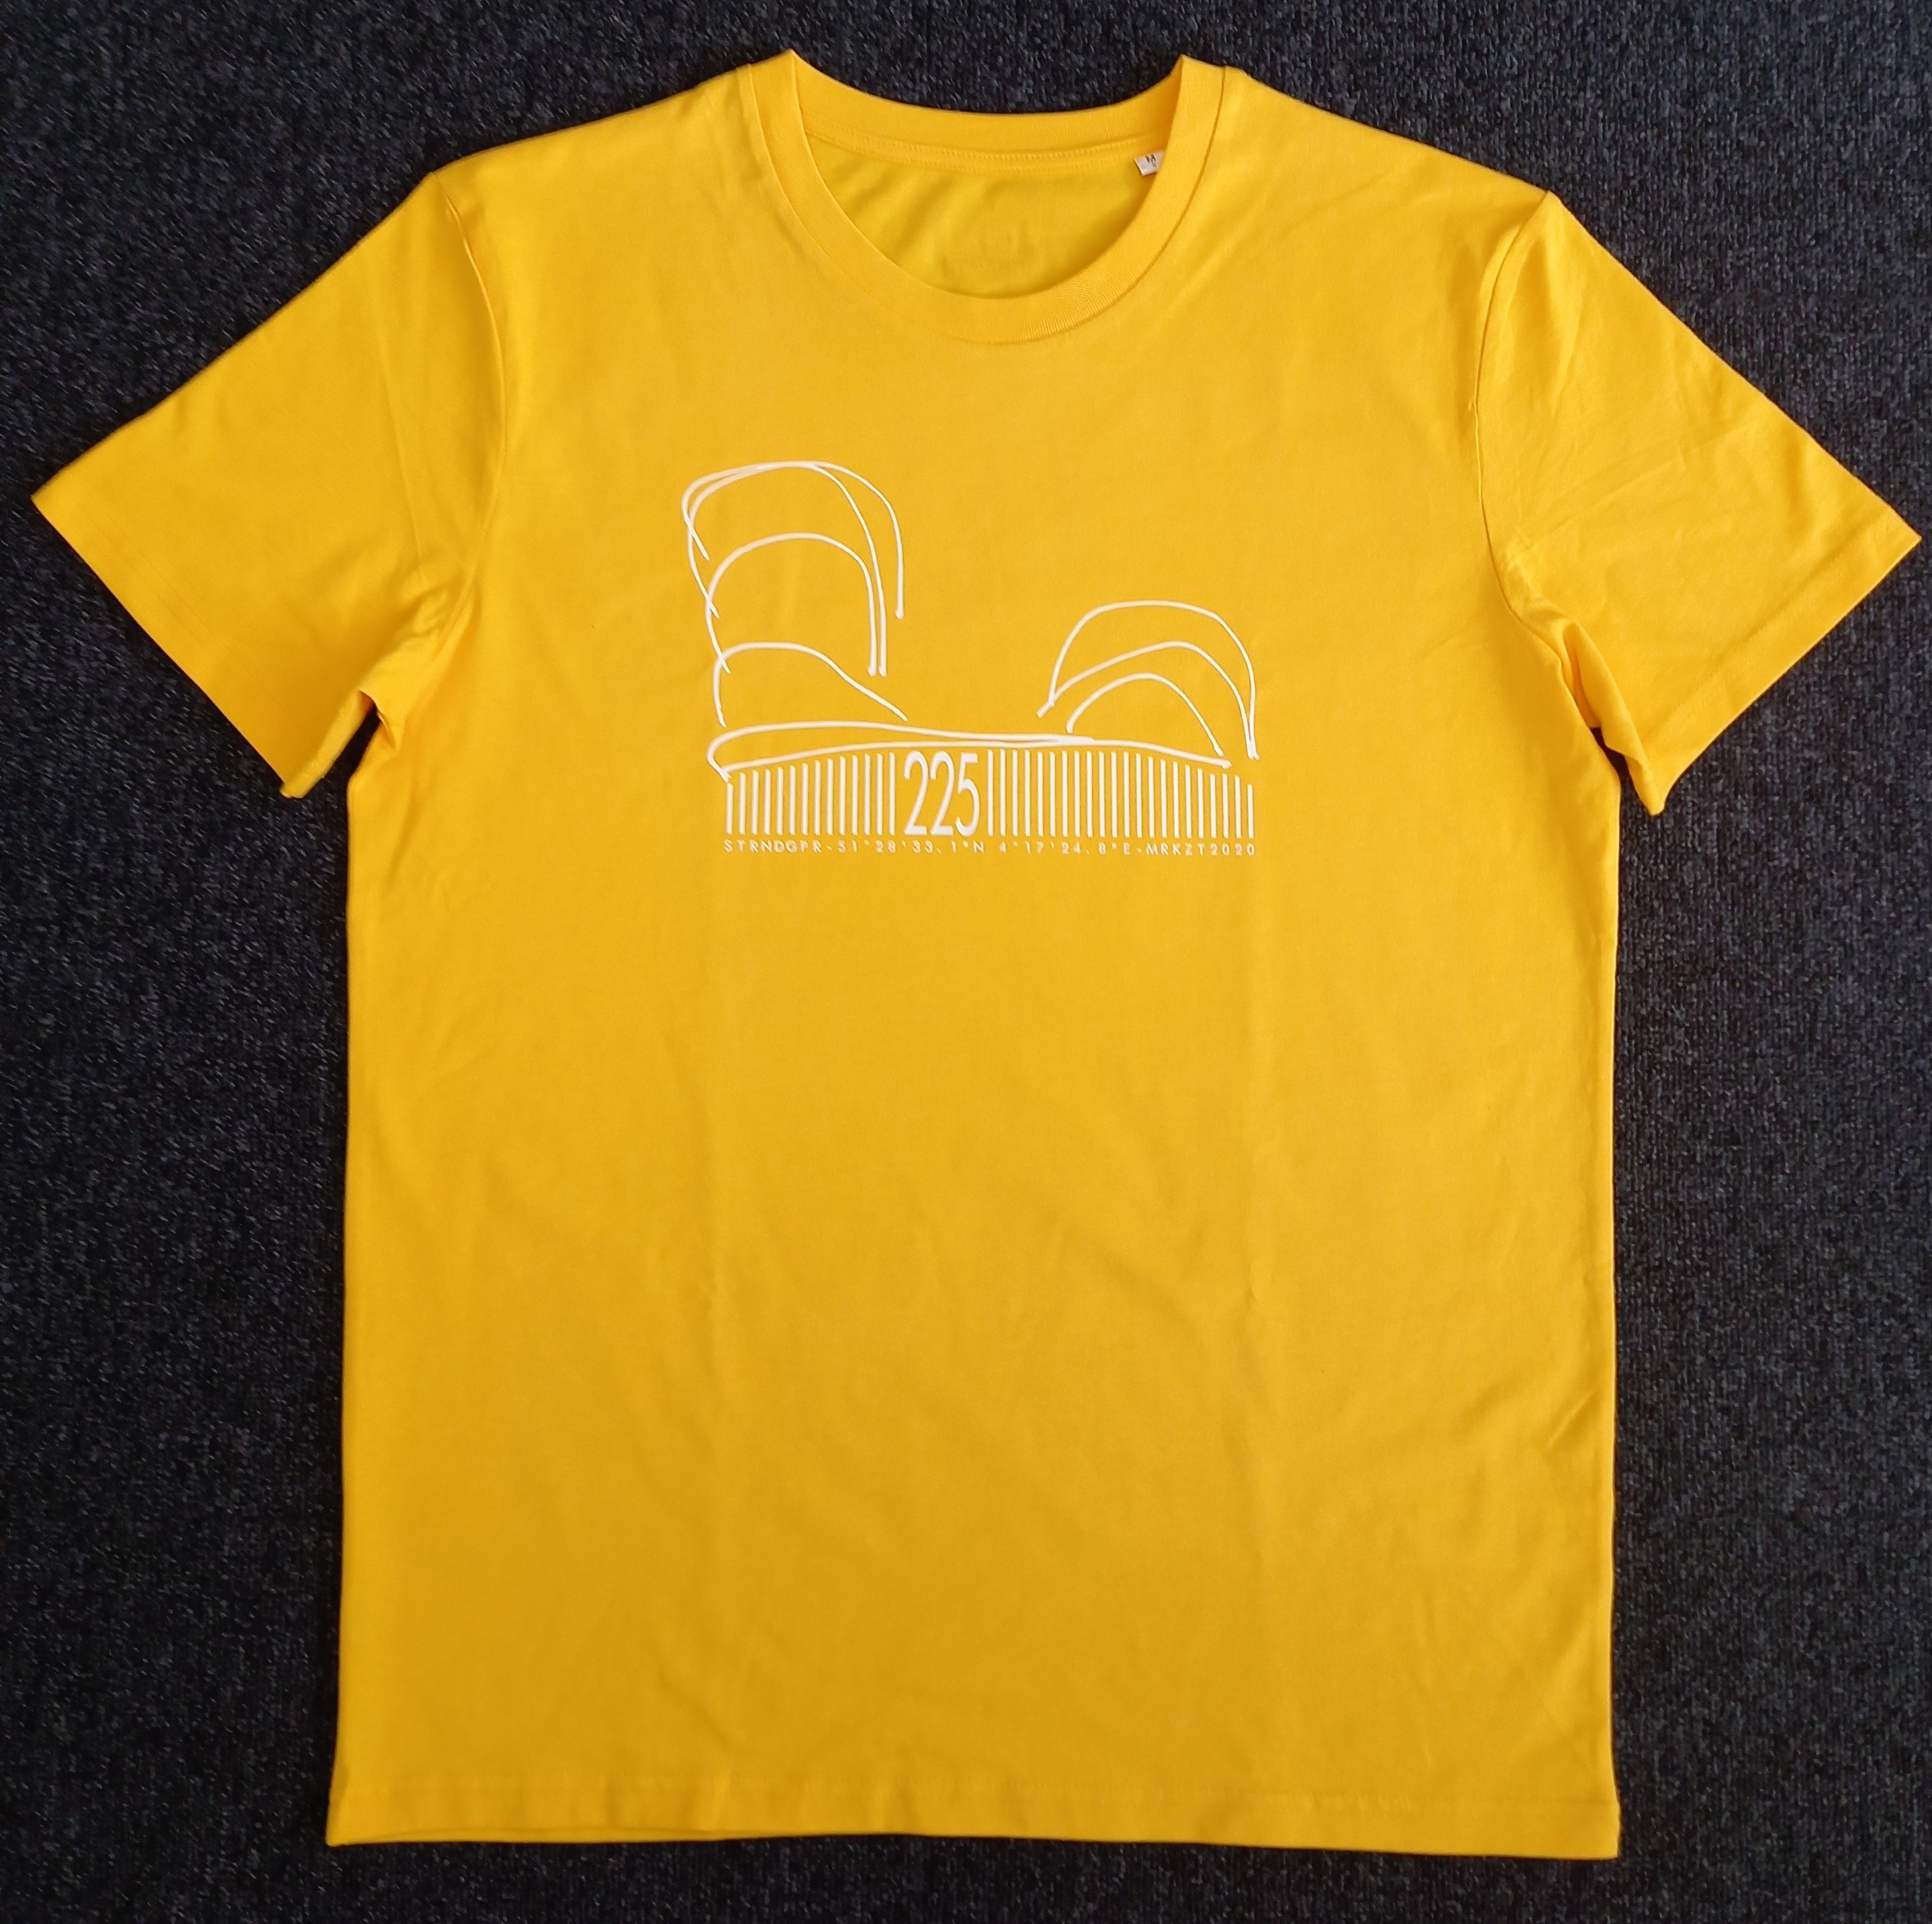 t-shirt project 225